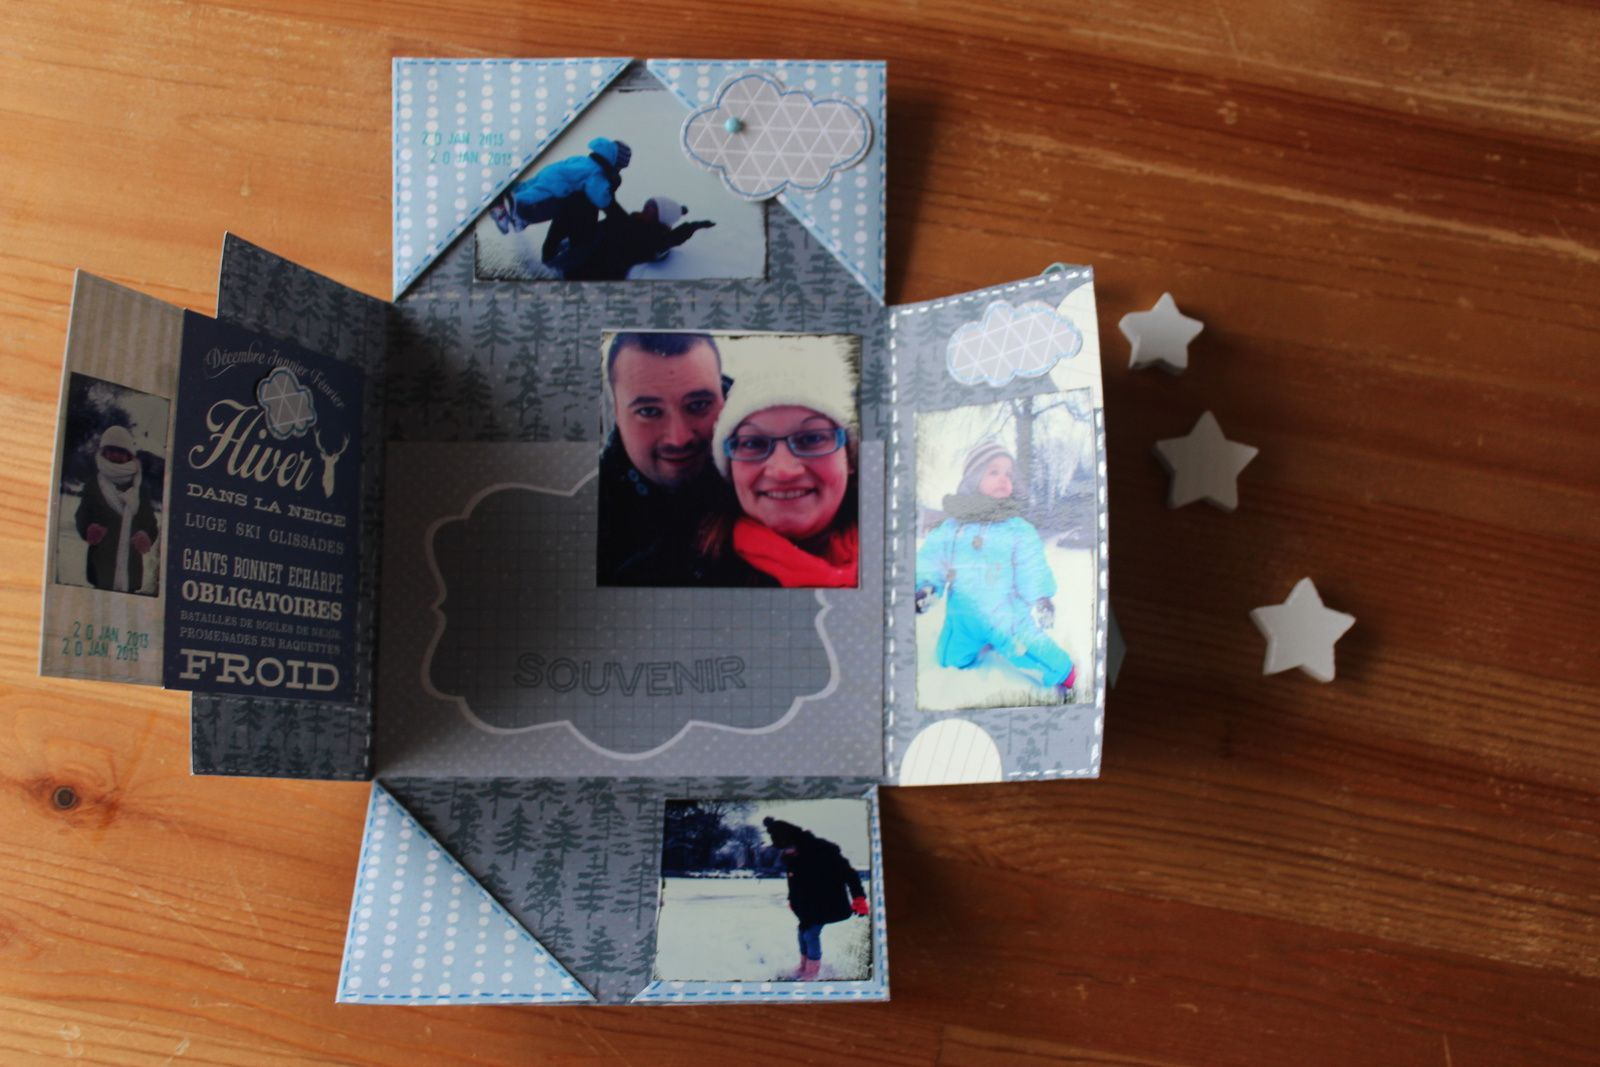 http://luniversdegarfield59.over-blog.com mini album neige hiver scrap